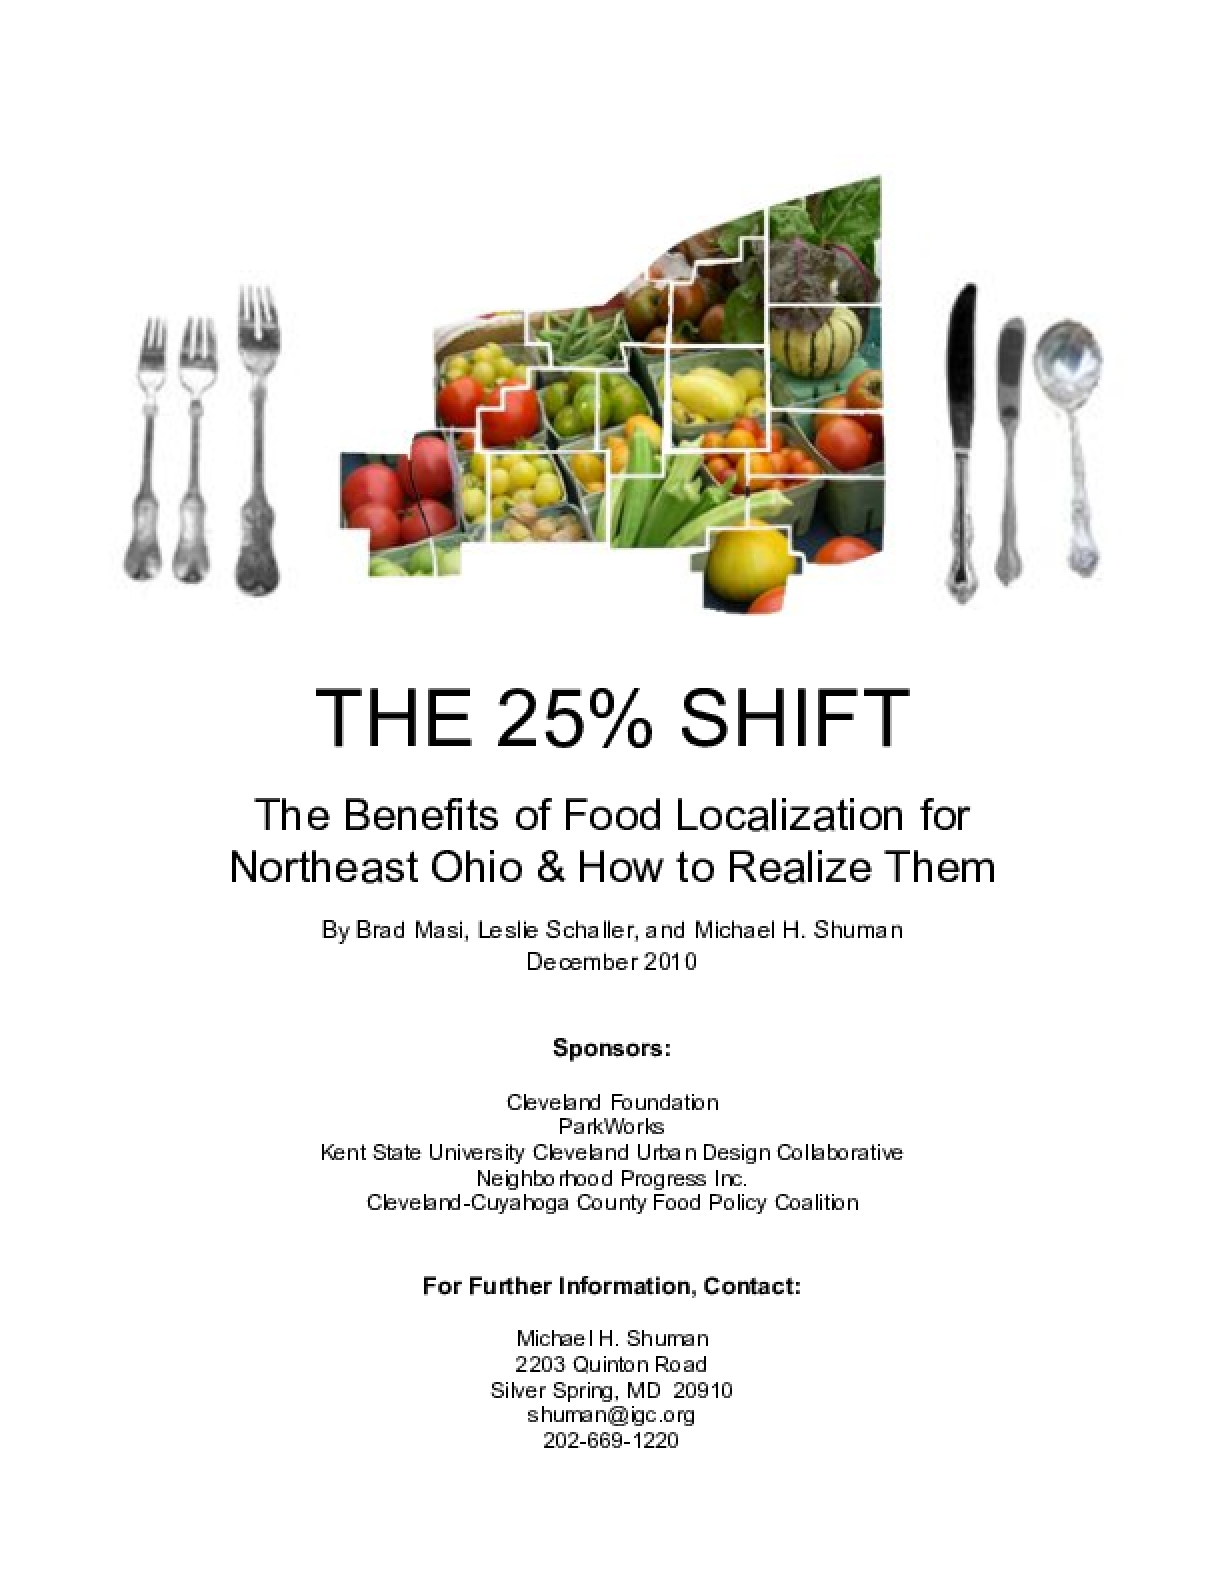 The 25% Shift: The Benefits of Food Localization for Northeast Ohio and How to Realize Them